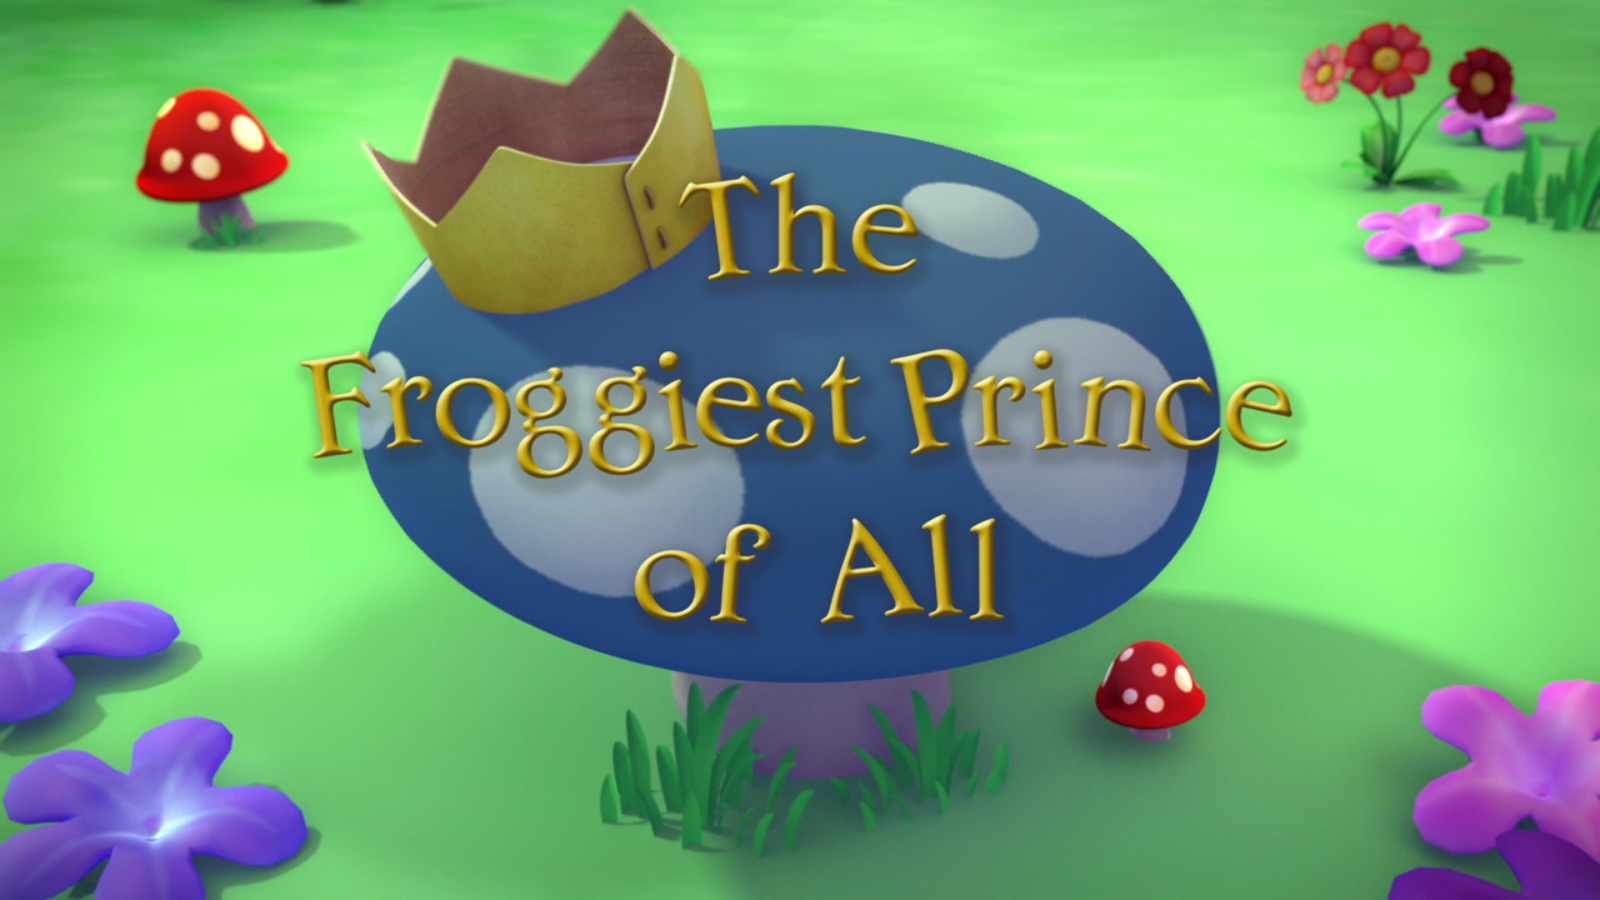 The Froggiest Prince of All